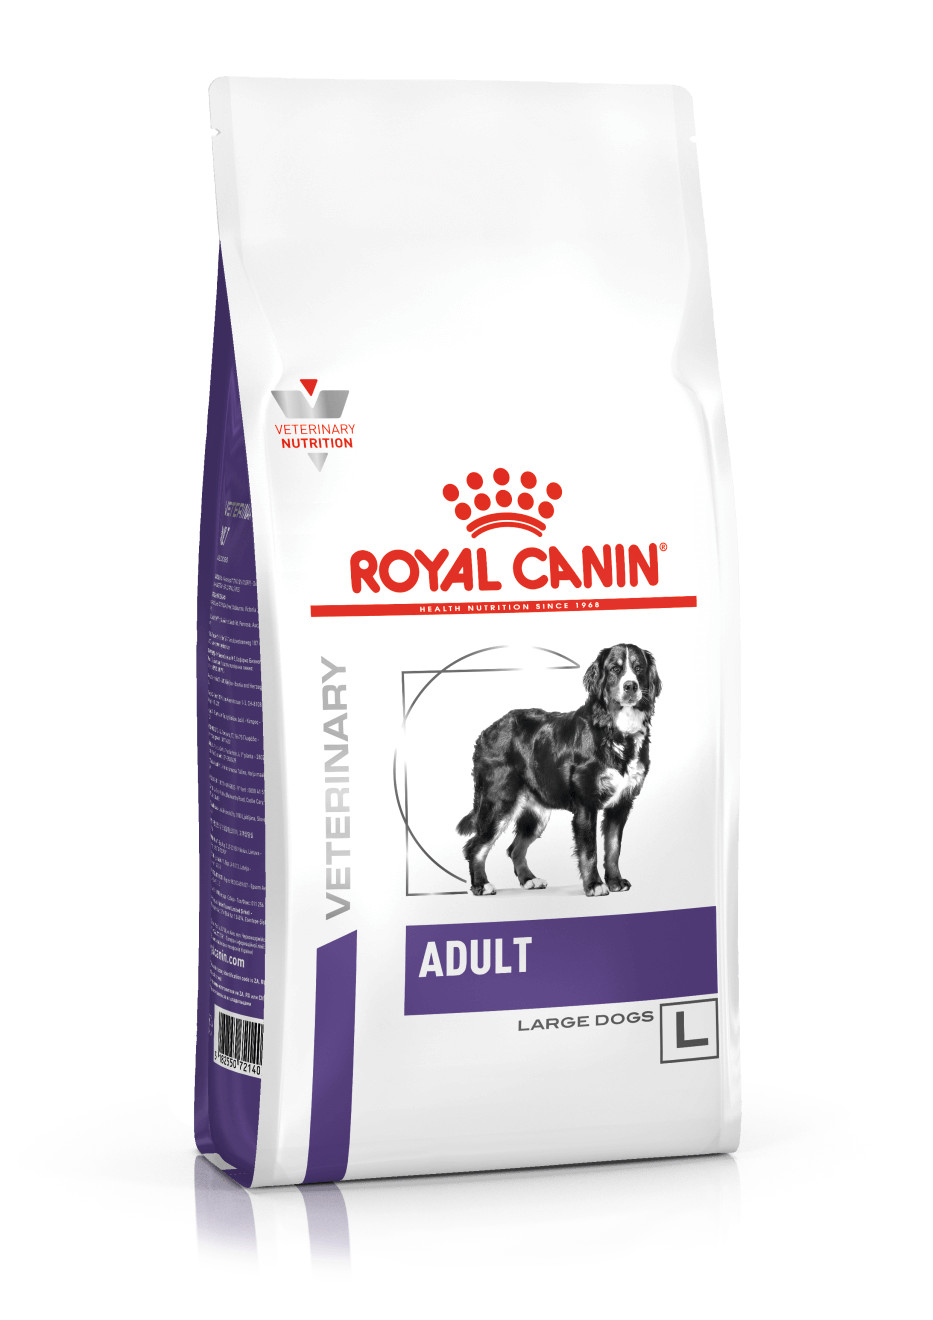 Royal Canin Veterinary Adult Large Dogs pour chien